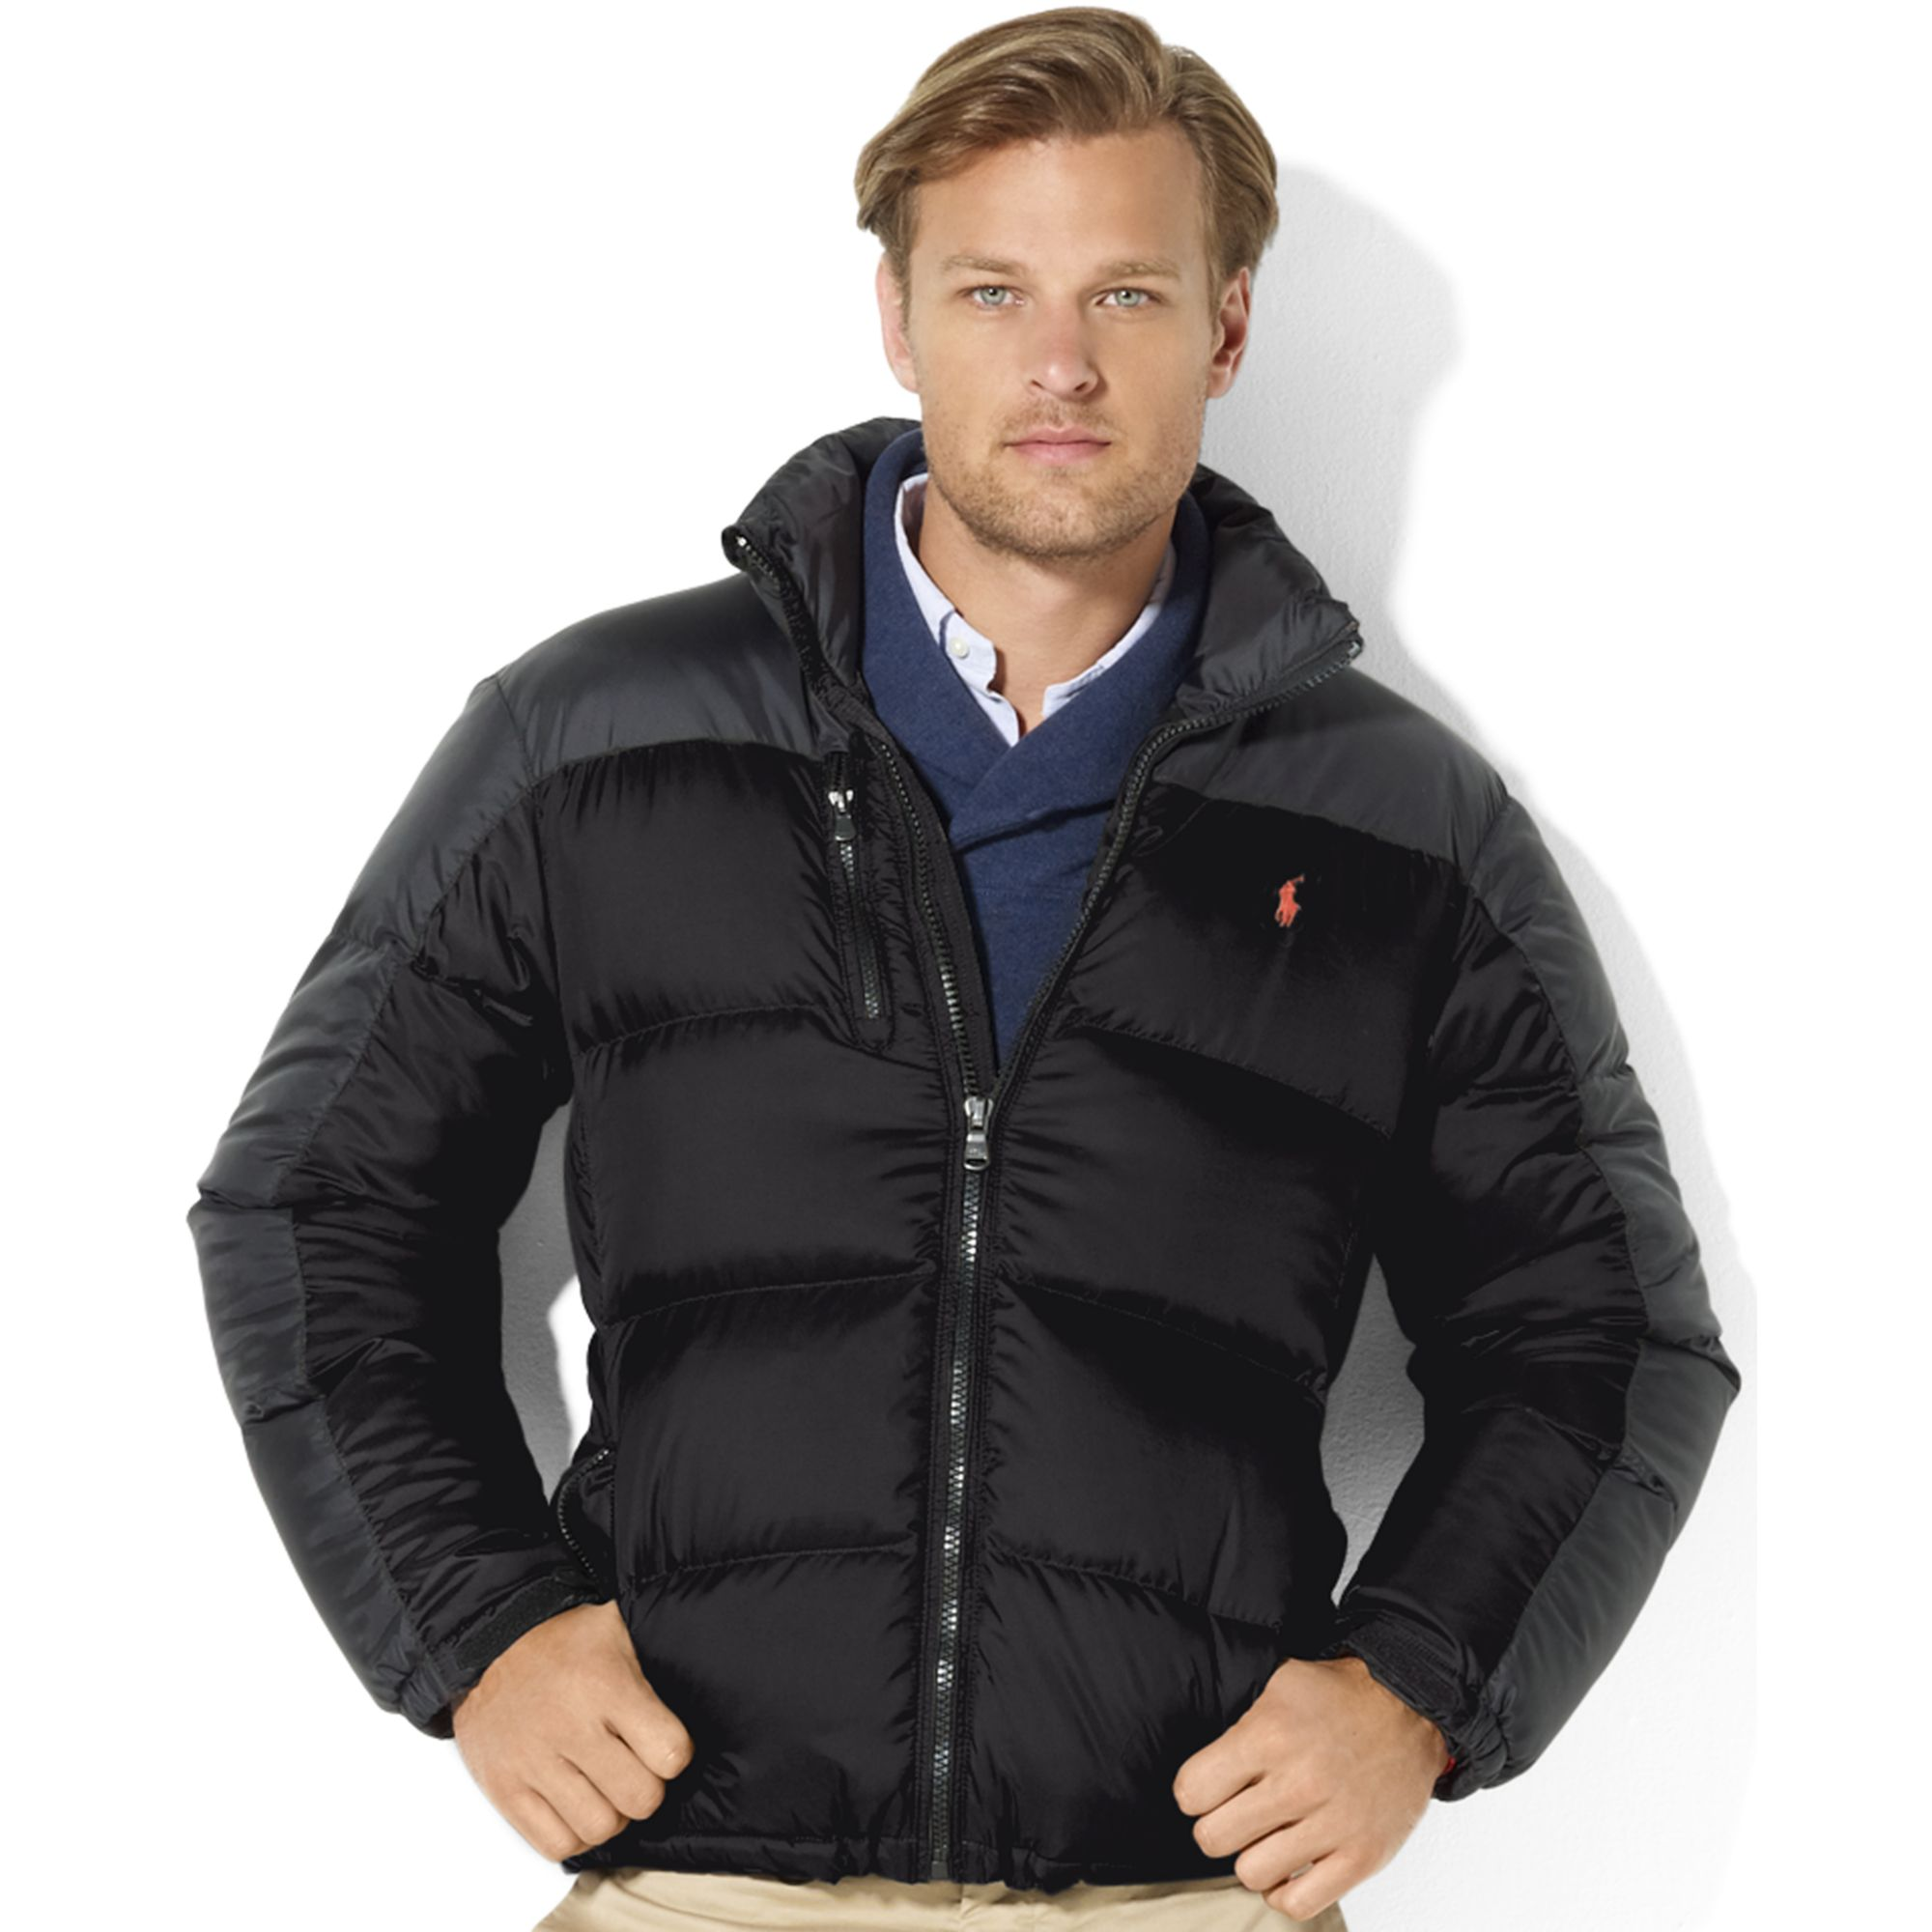 ... Ralph Lauren Polo Us Open New York Track Jacket bet365 offer moneyback on 0 0 draws